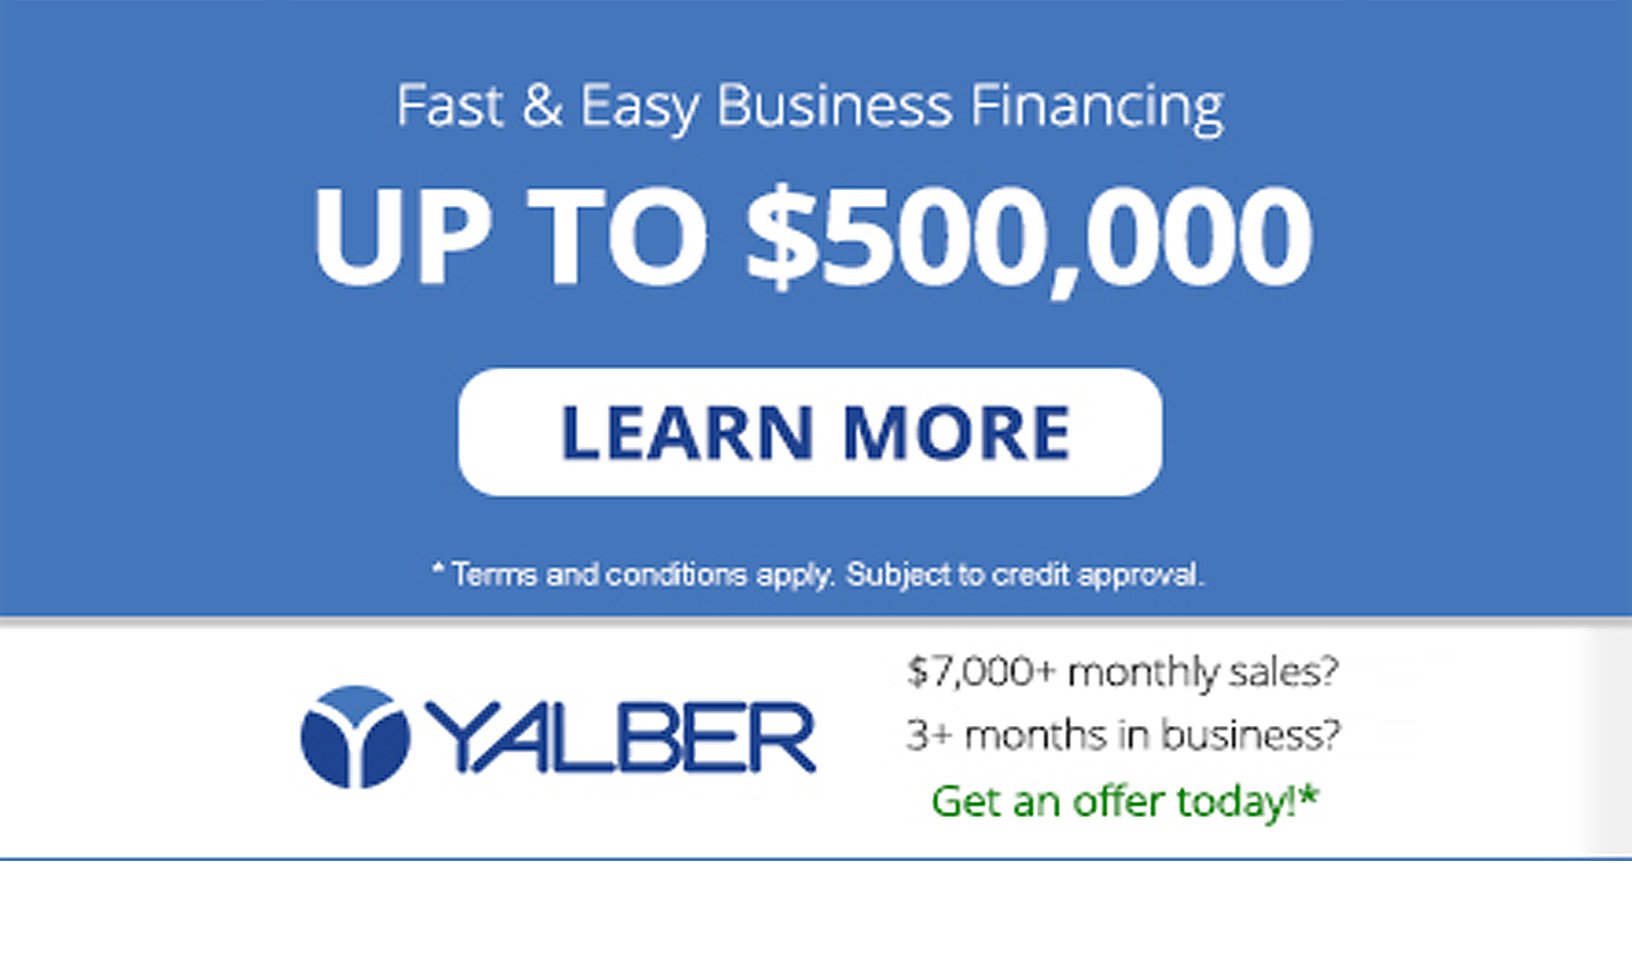 yalber and marquette business directory feature